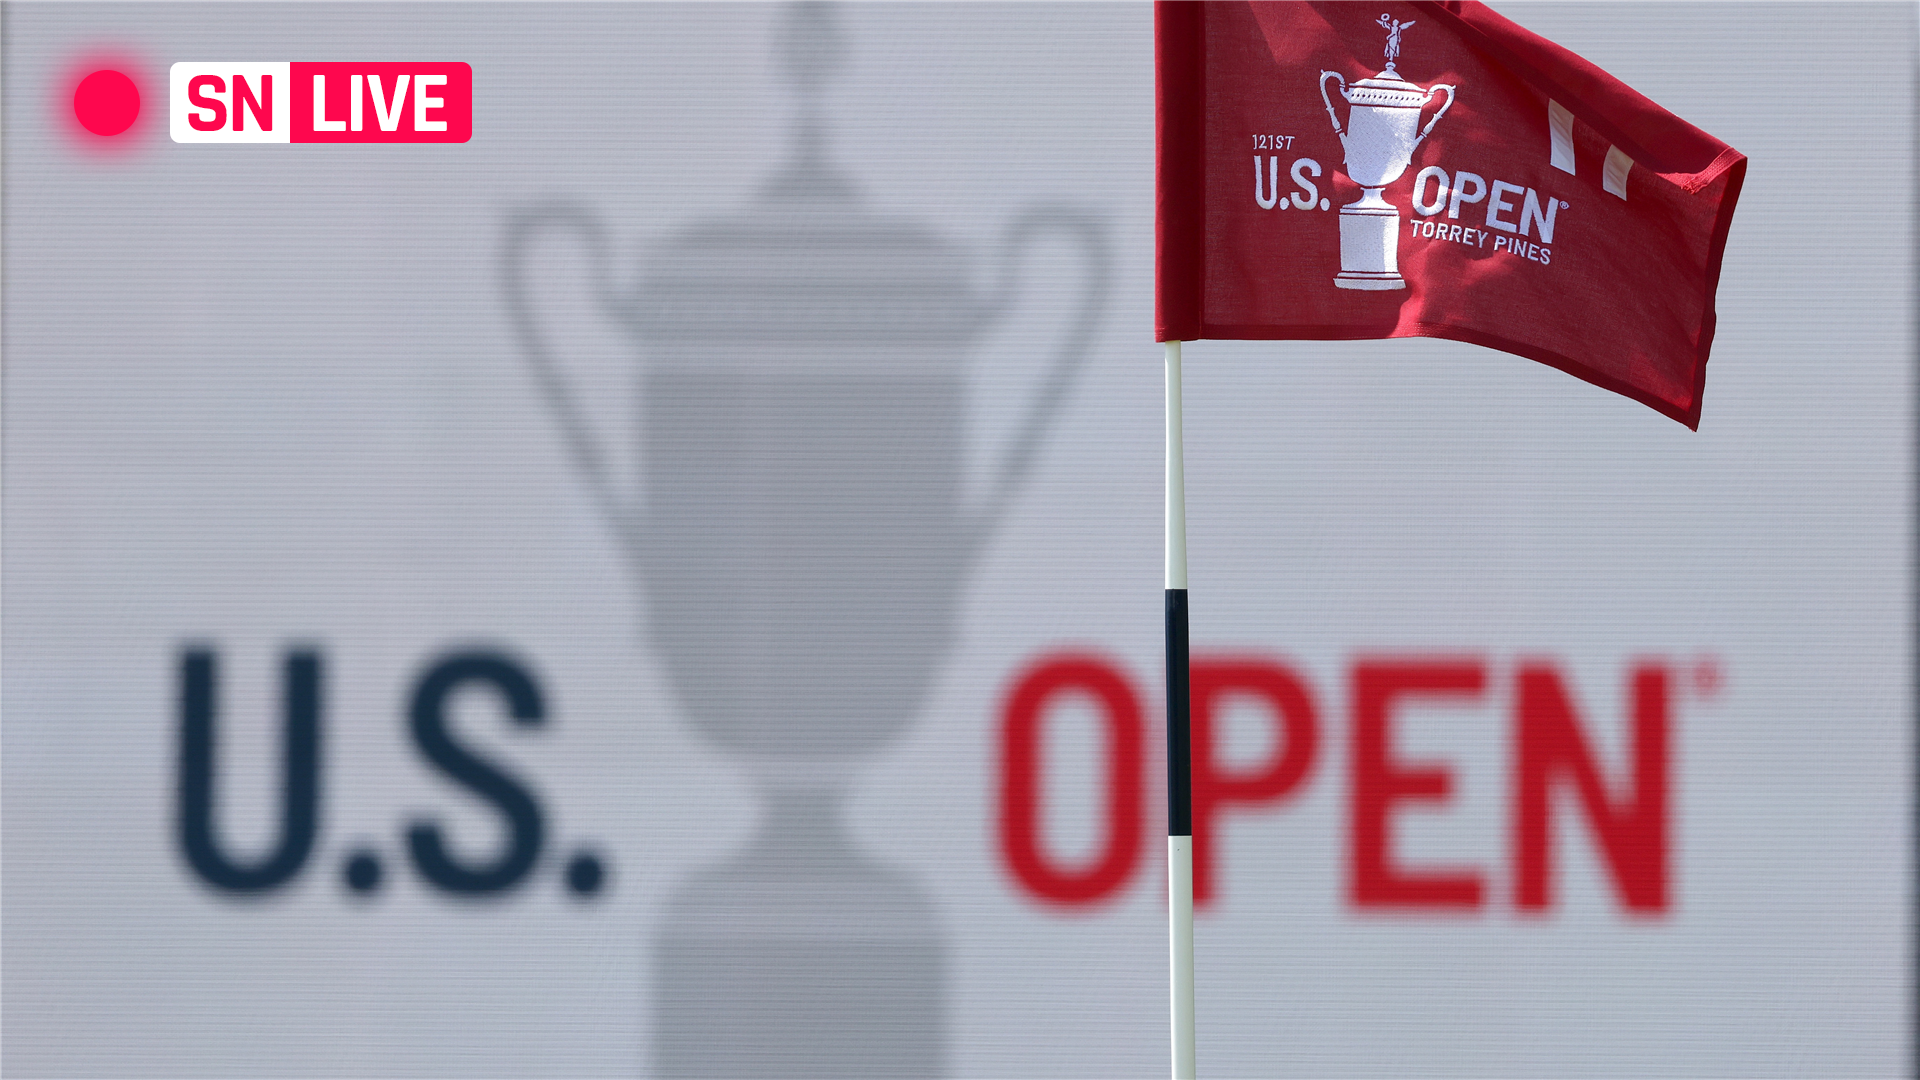 US Open 2021 standings: live golf results, results from Thursday's 1st round